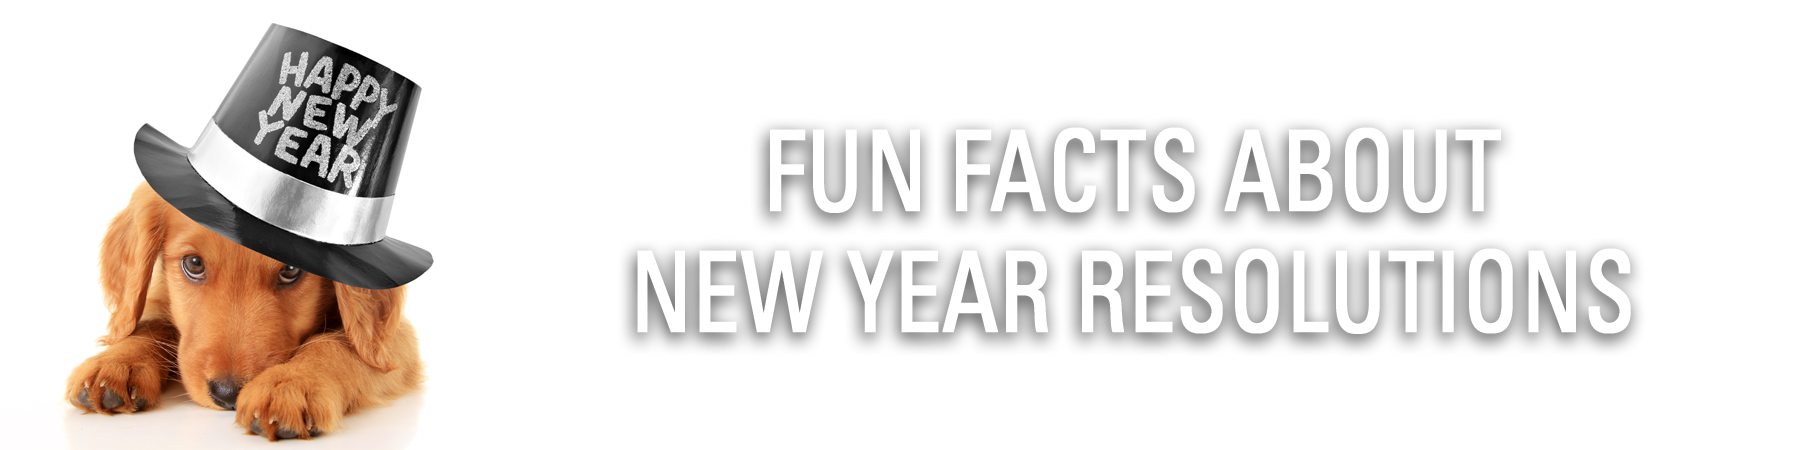 FUN FACTS ABOUT NEW YEAR RESOLUTIONS